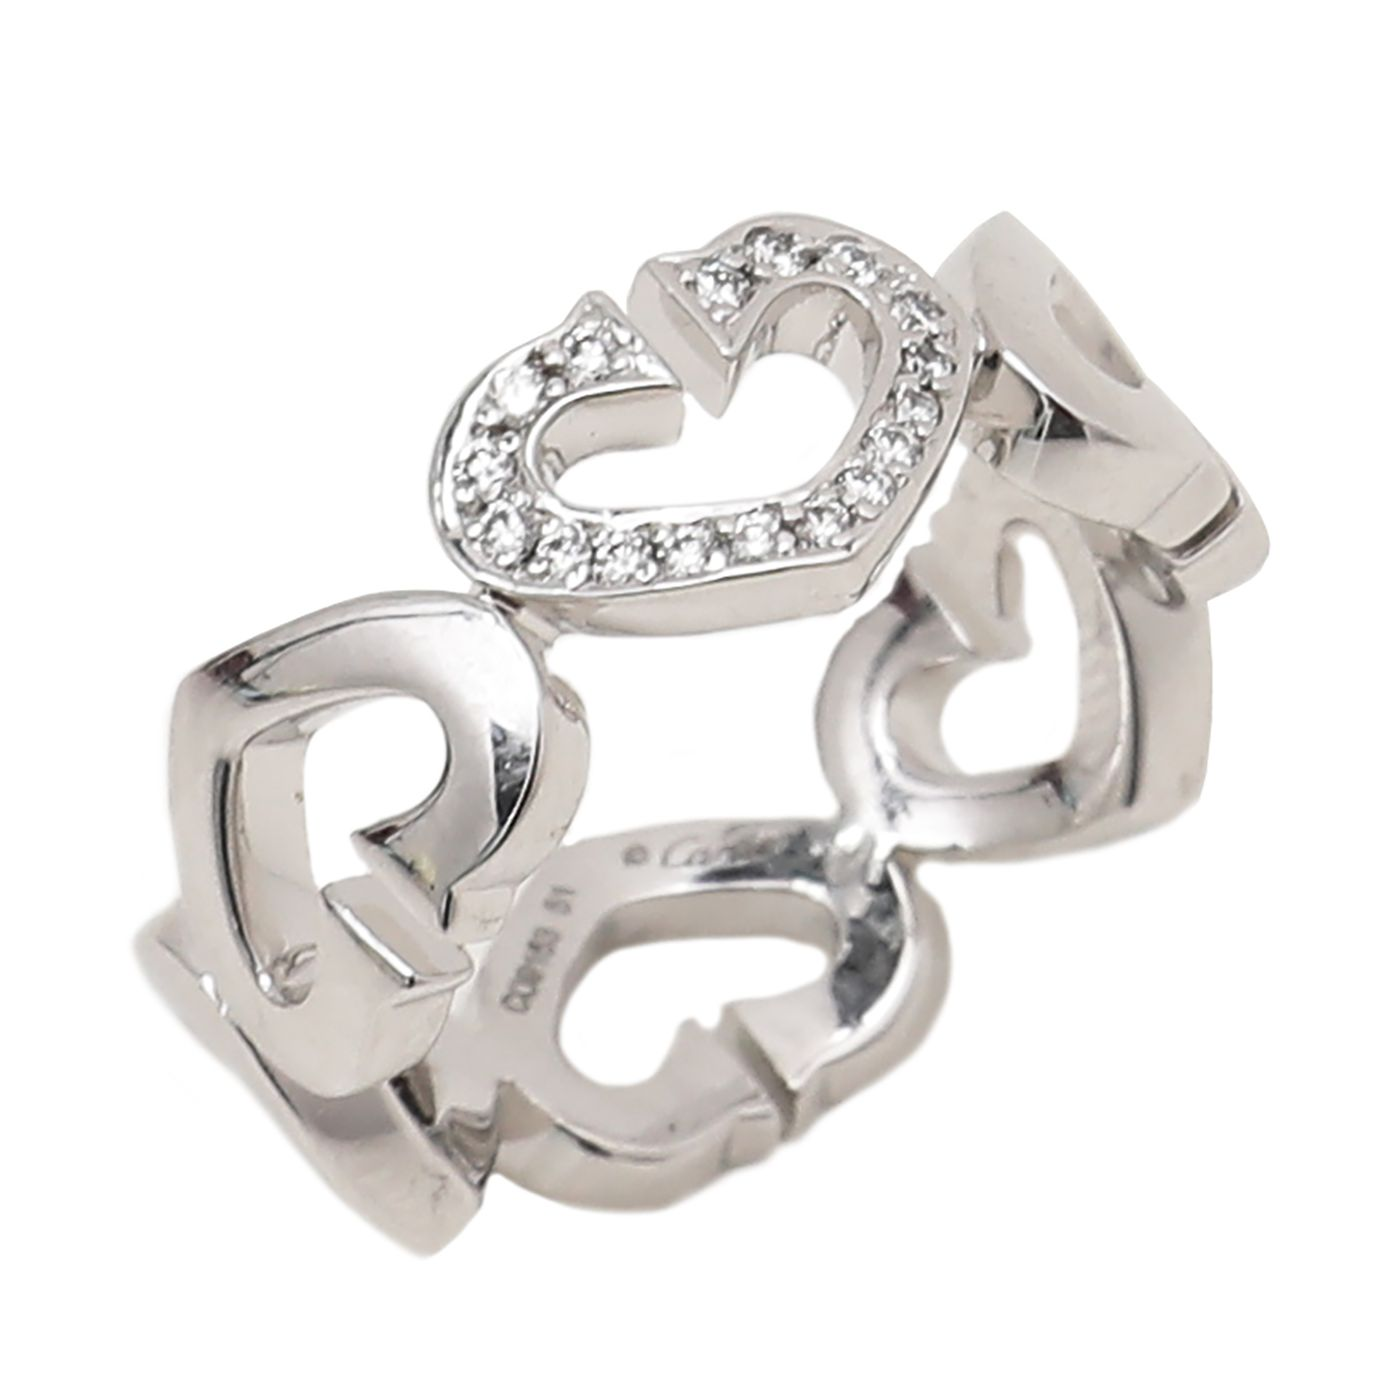 Cartier 18K White Gold Pave Diamond Heart Symbols Ring 51